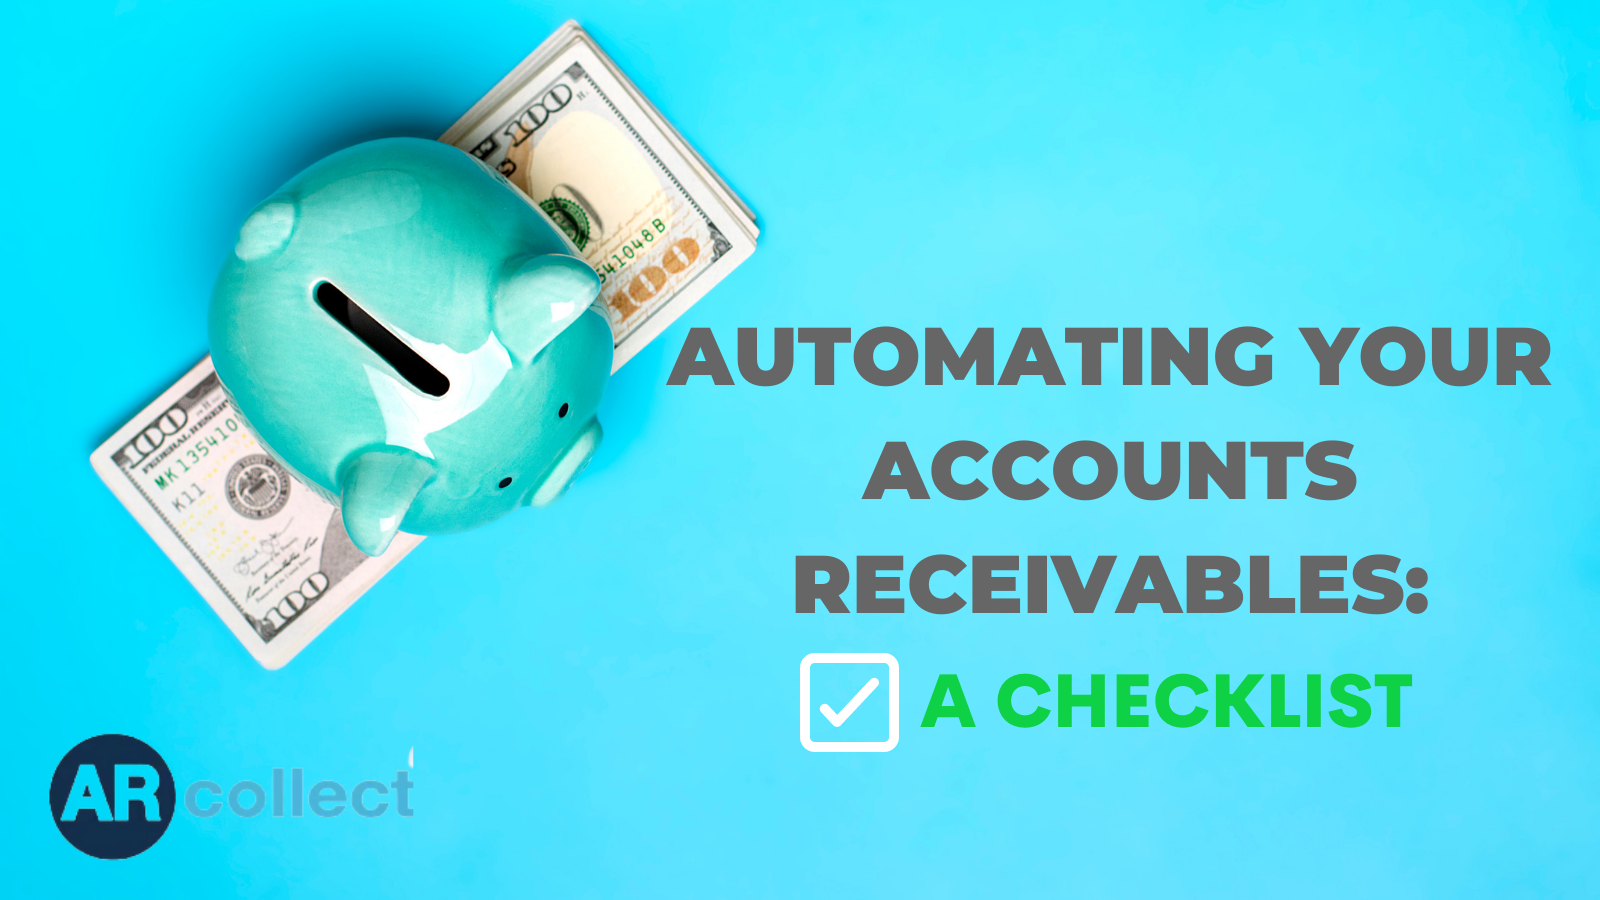 Automating your accounts receivables: A Checklist